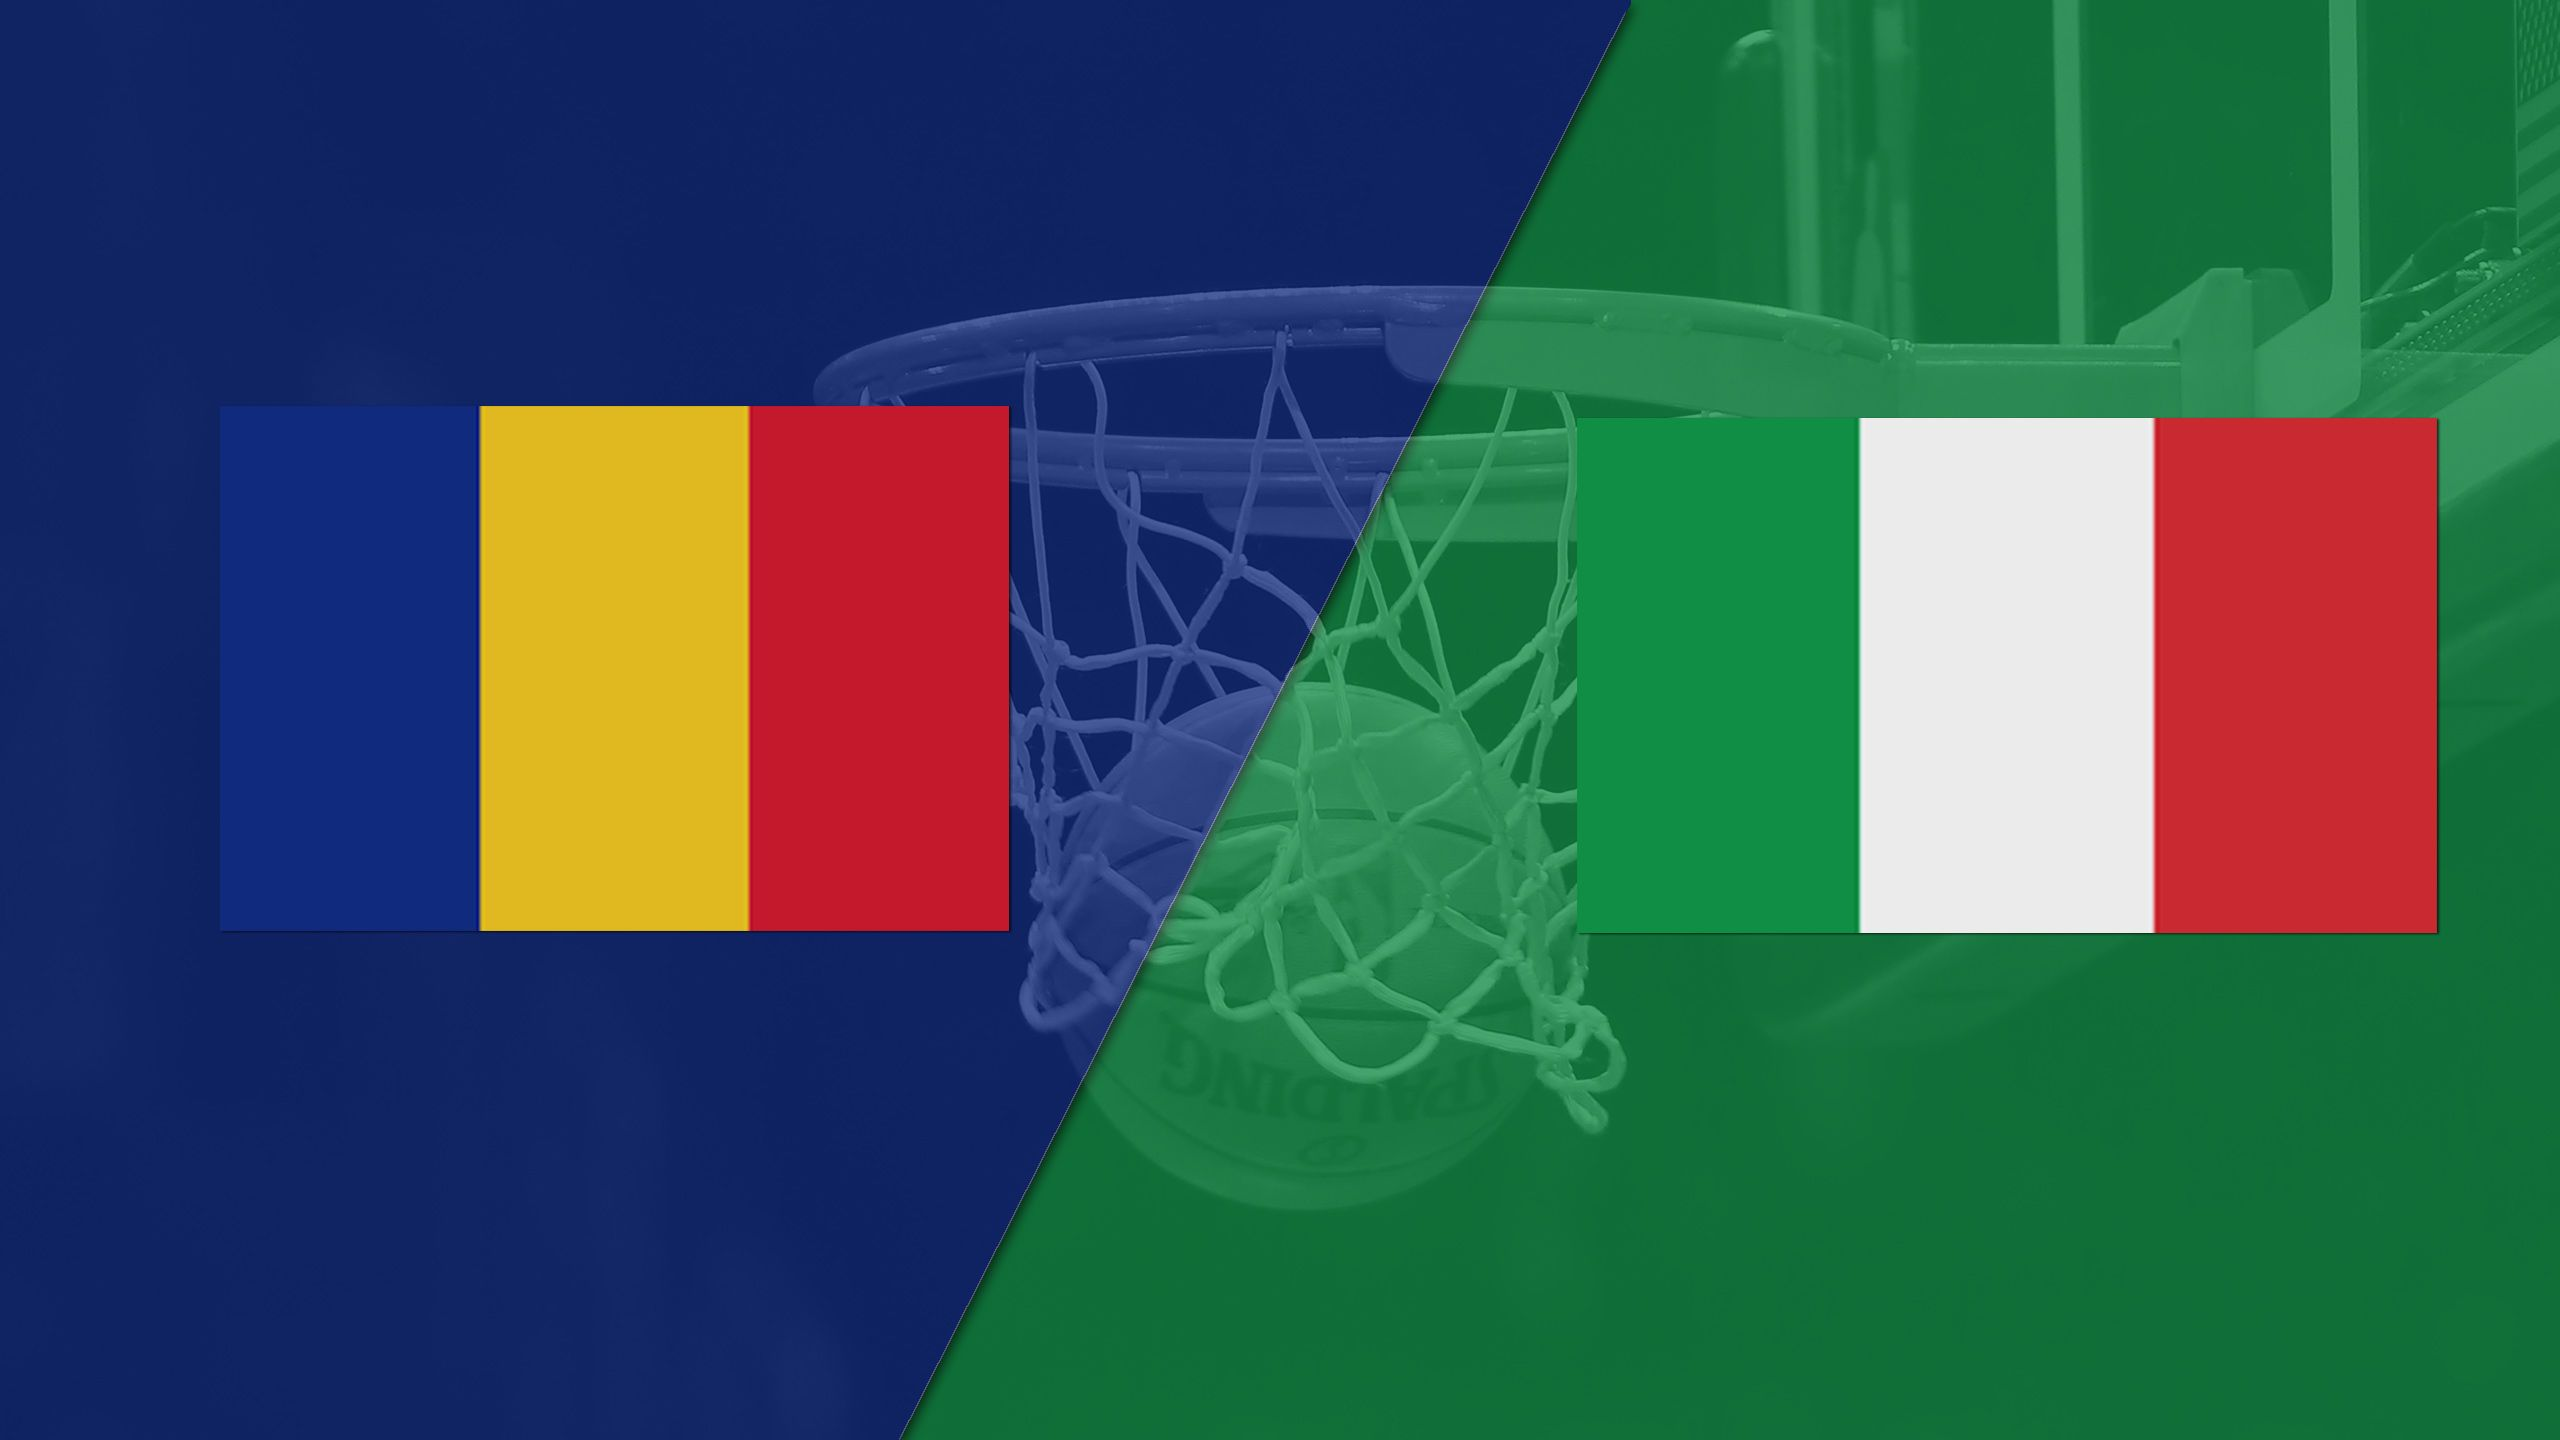 Romania vs. Italy (FIBA World Cup 2019 Qualifier)